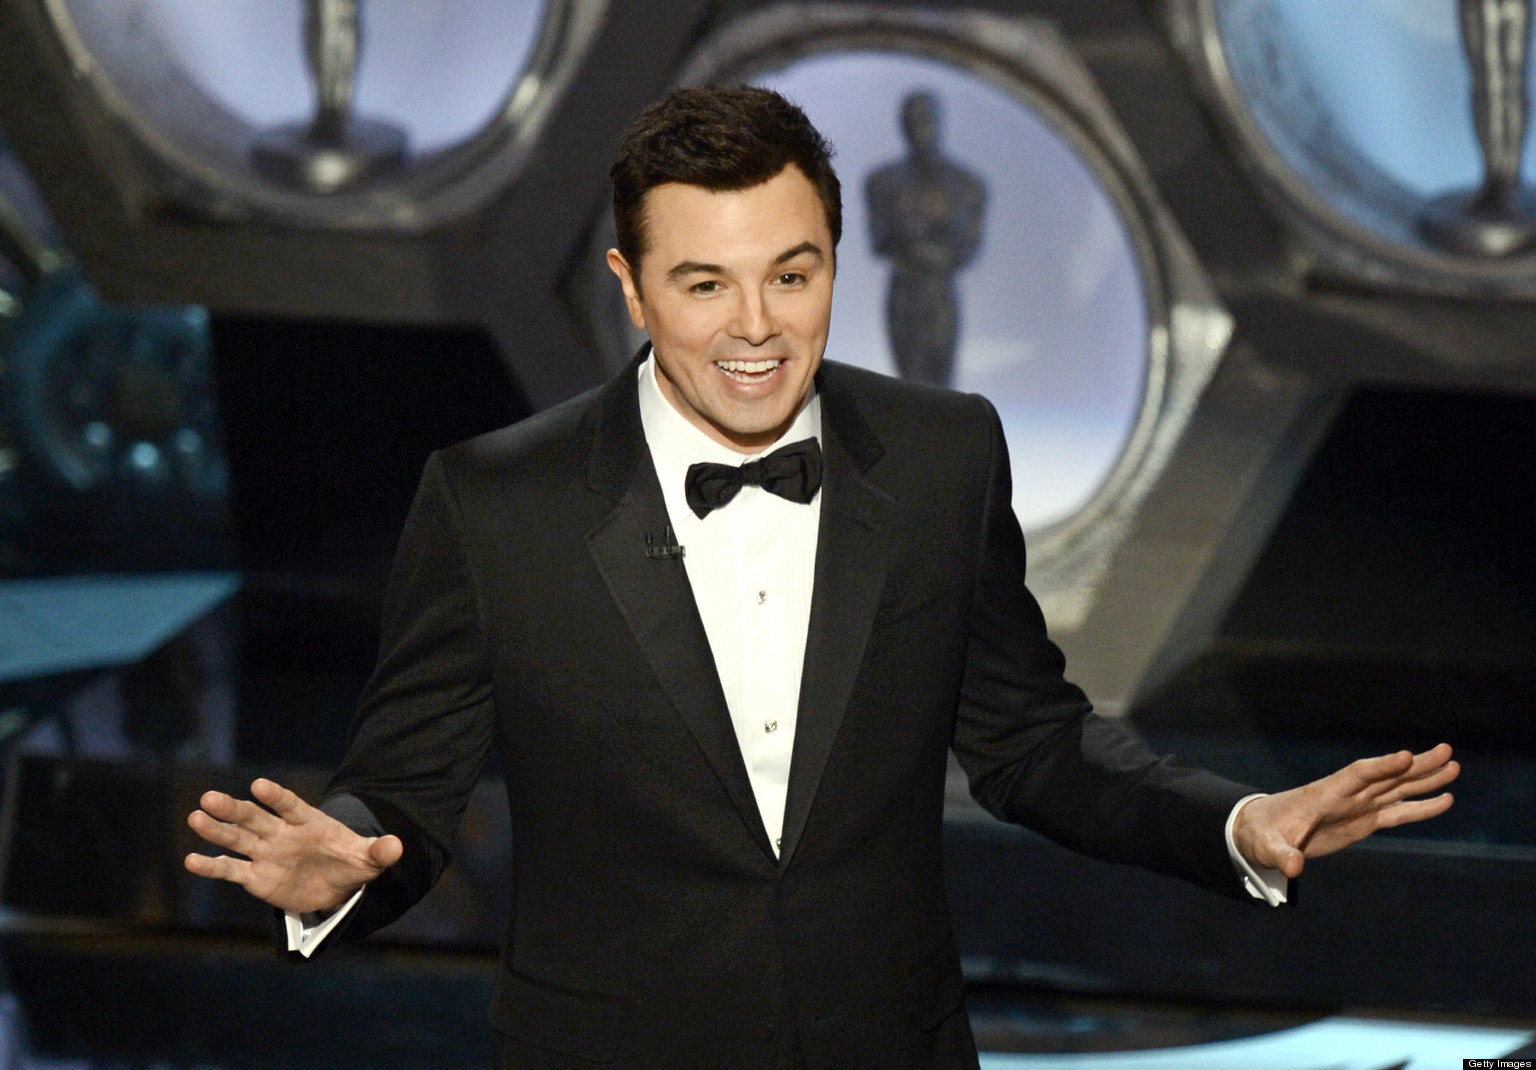 Seth MacFarlane Oscars The Problem With the Oscars Is the Oscars